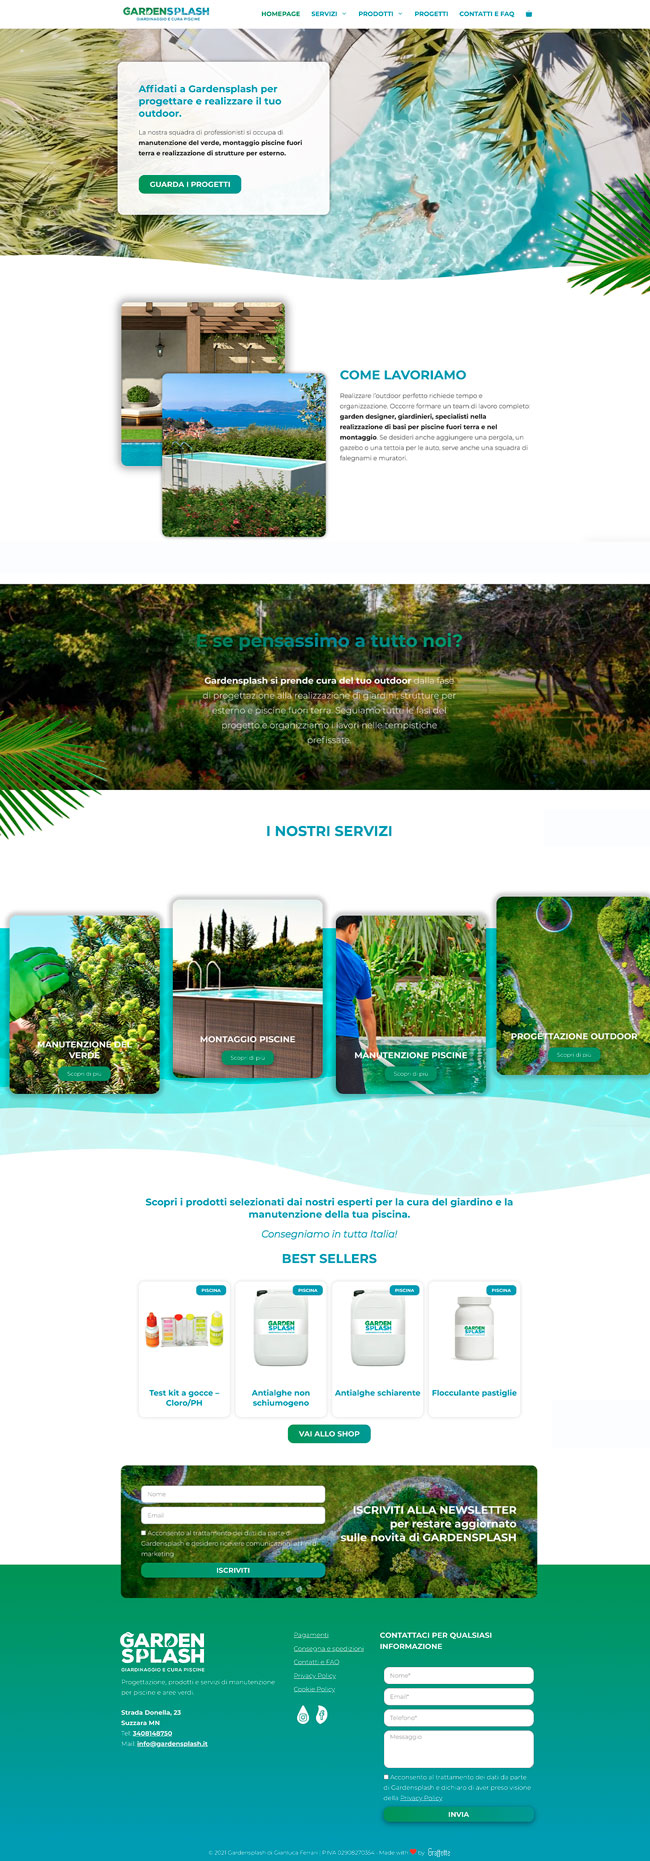 gardensplash homepage